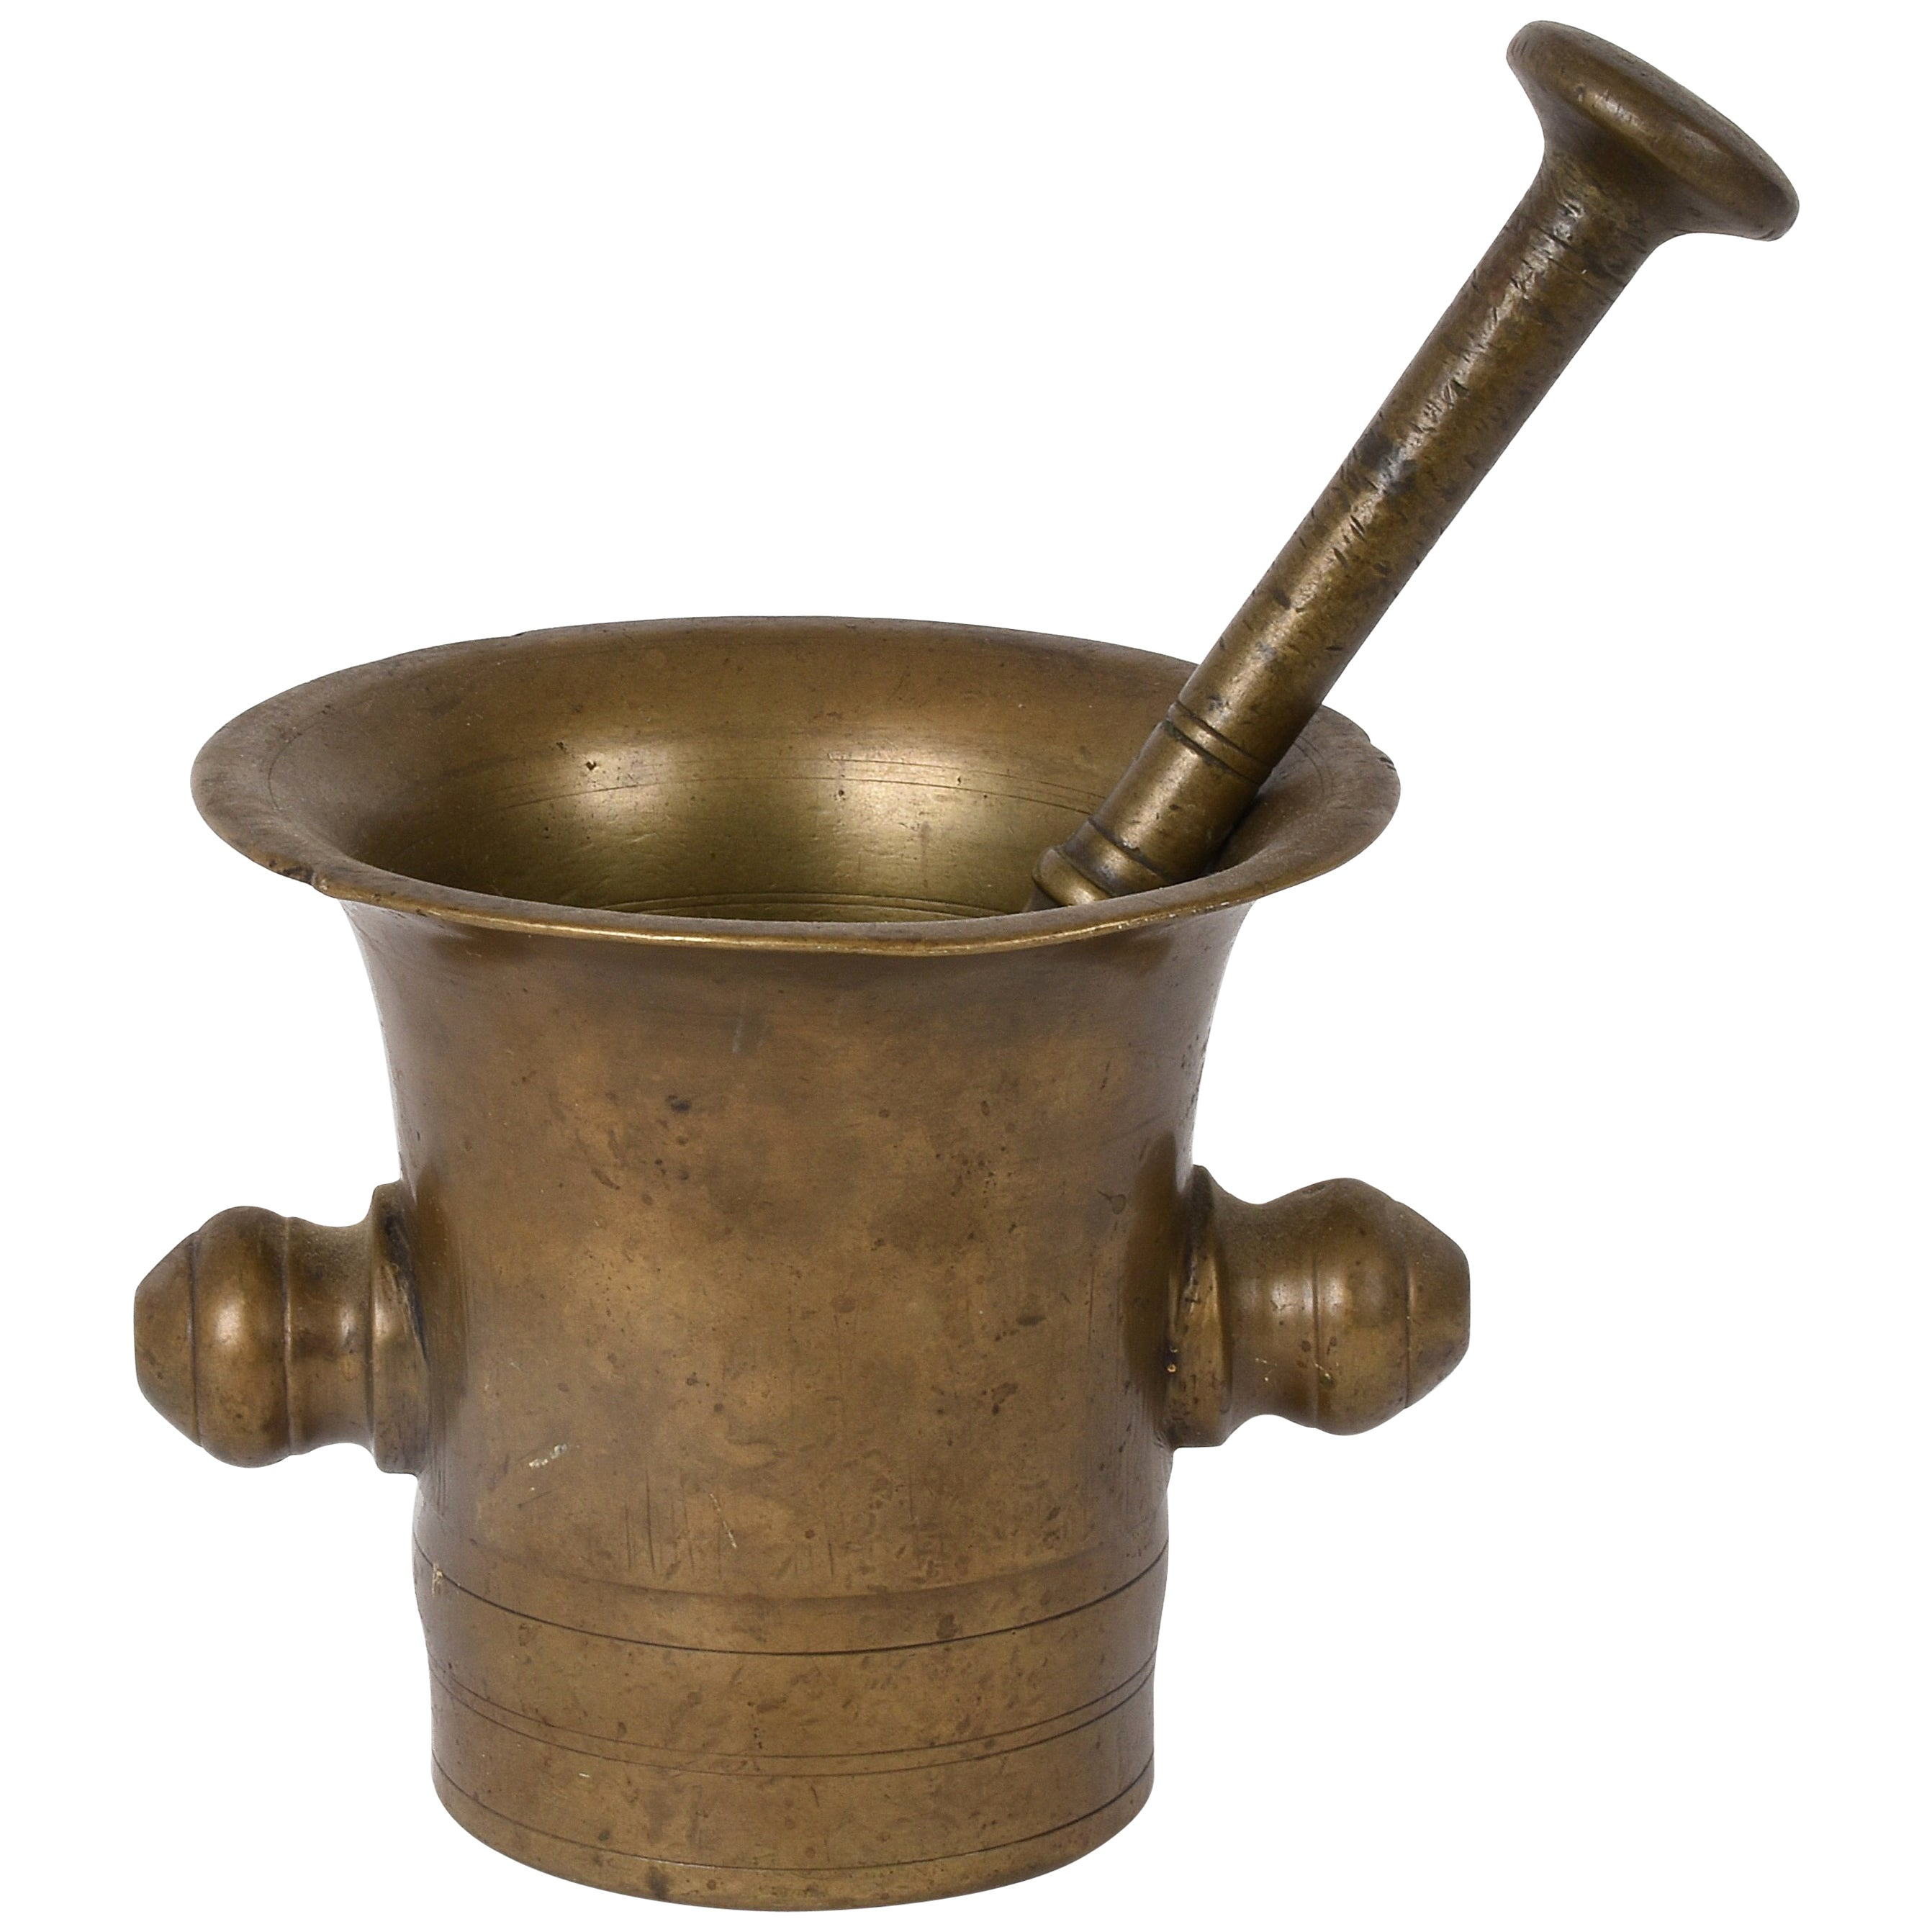 Grand Tour 19th Century Handmade Bronze Pharmaceutic Mortar with Pestle